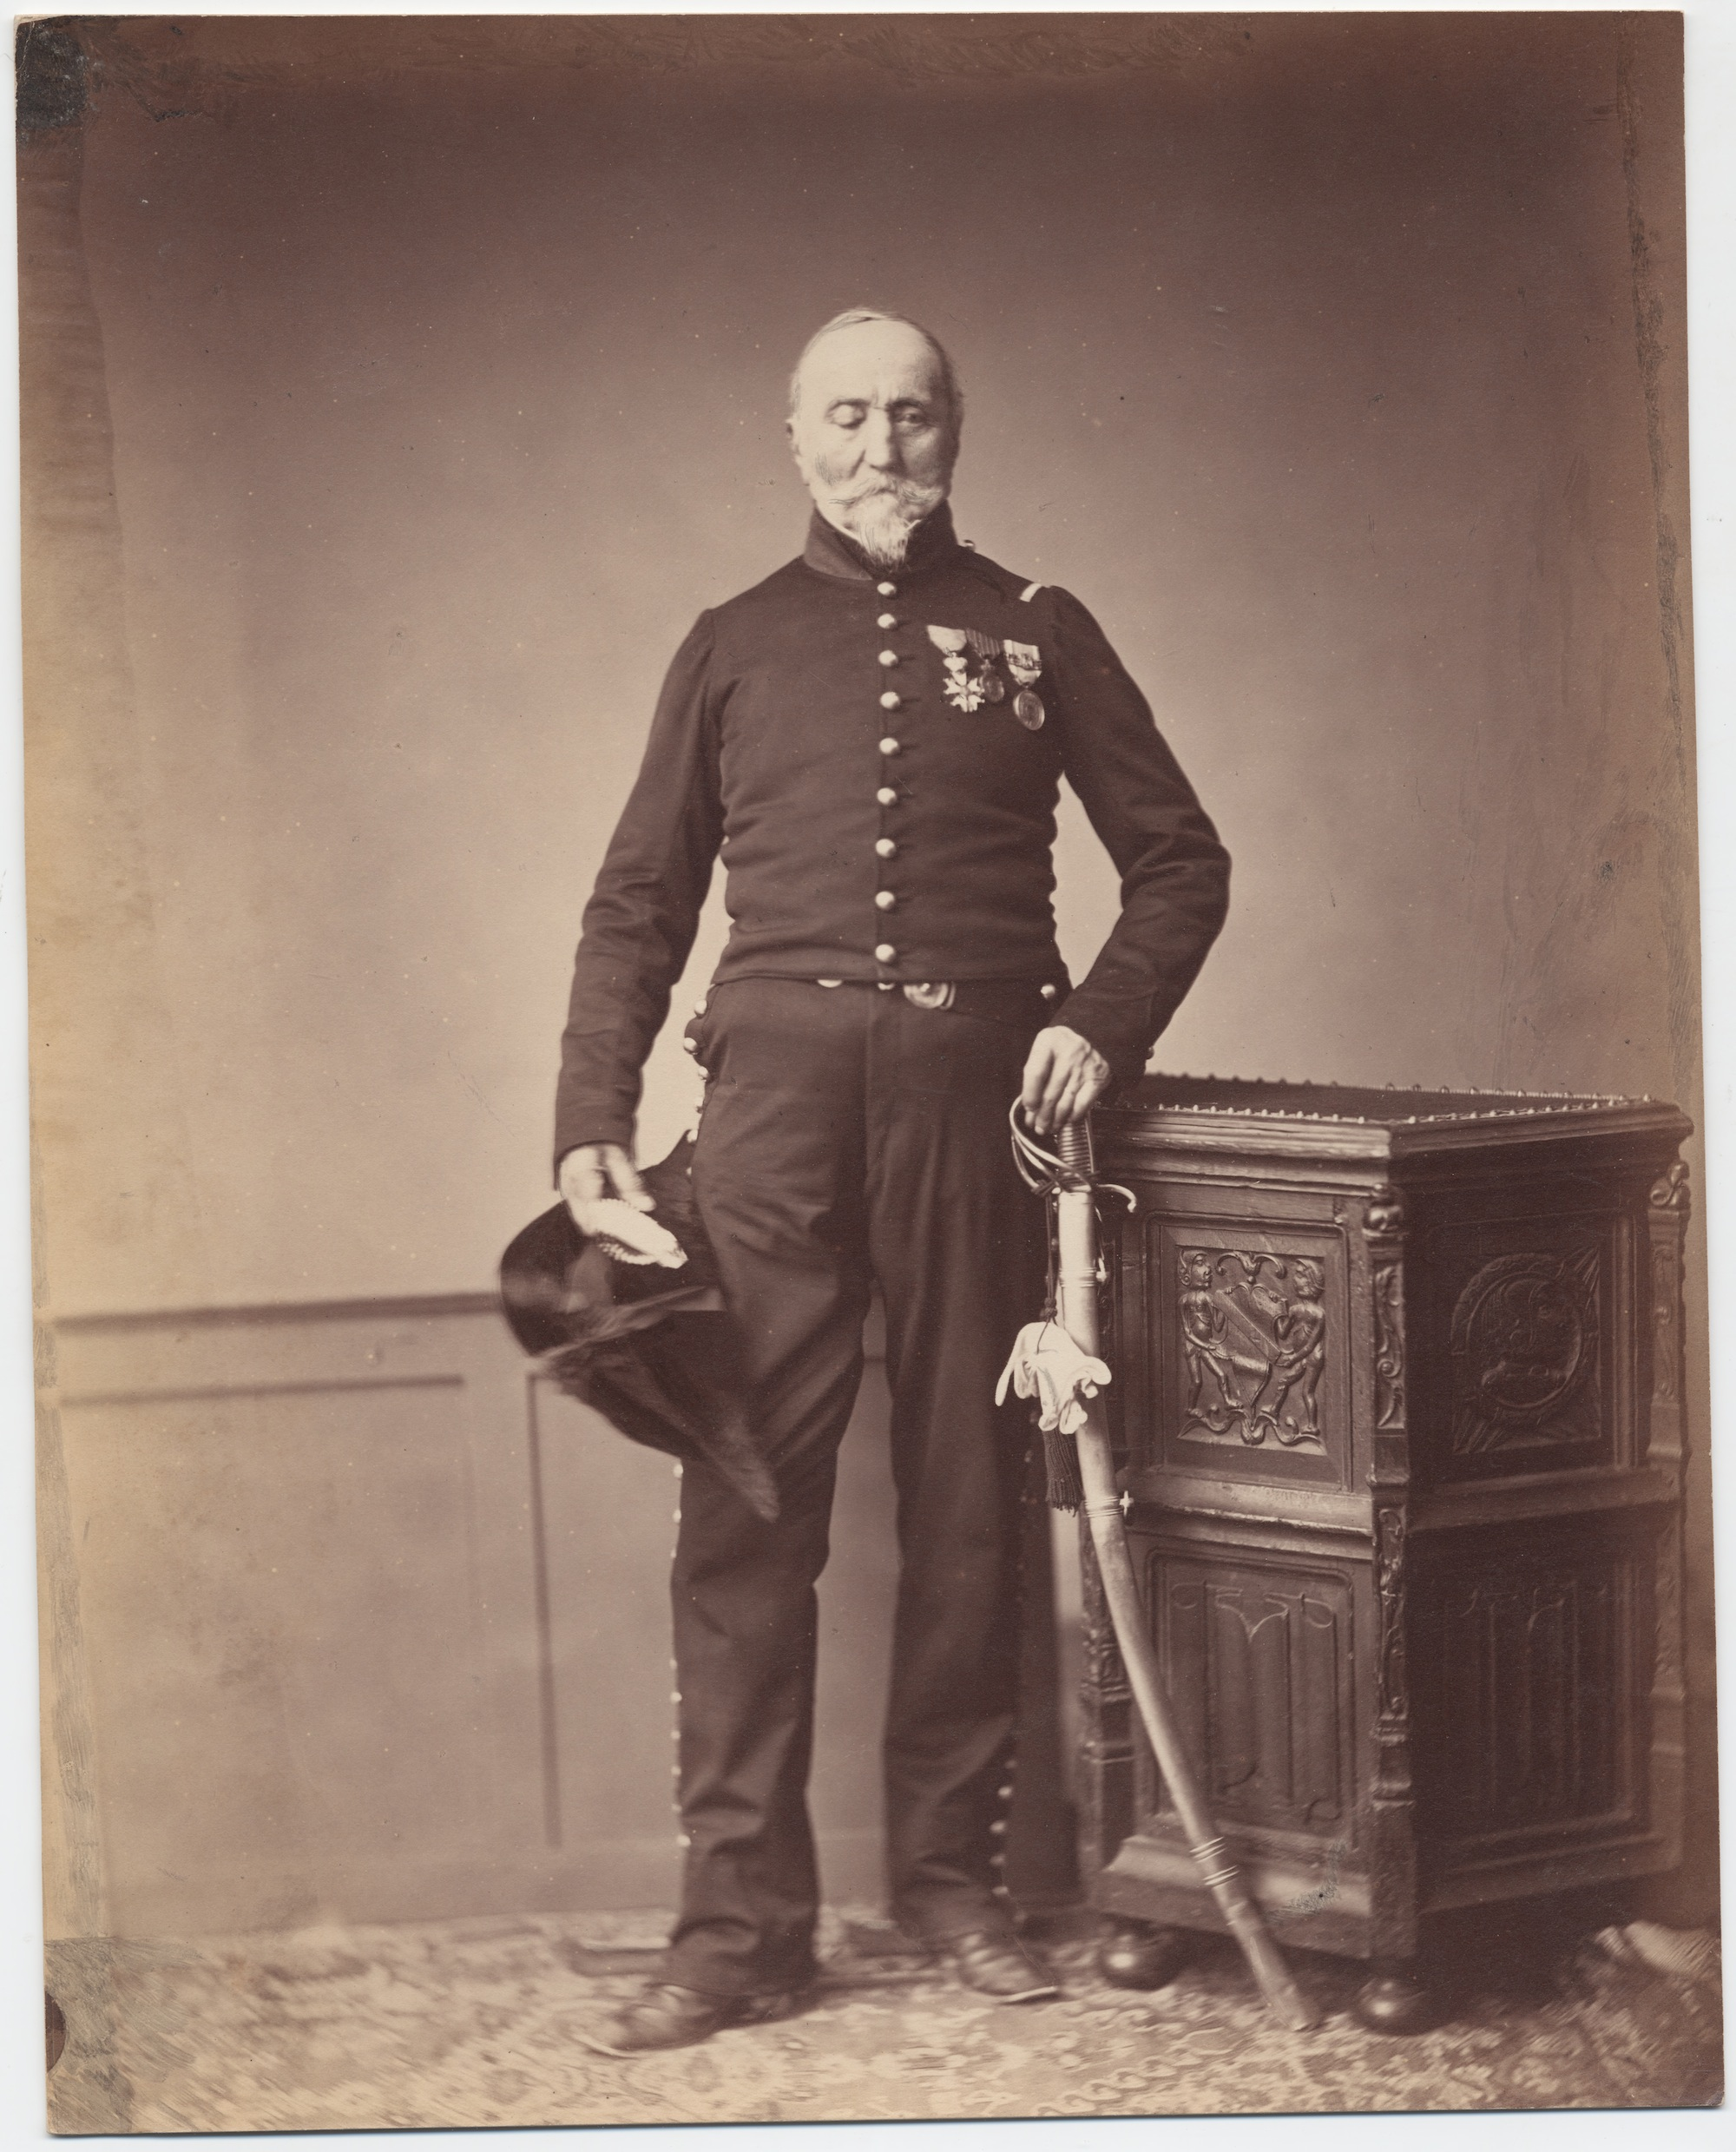 Monsieur Loria, 24th Mounted Chasseur, Regiment Chevalier of the Legion of Honor. Monsieur Loria seems to have lost his right eye.